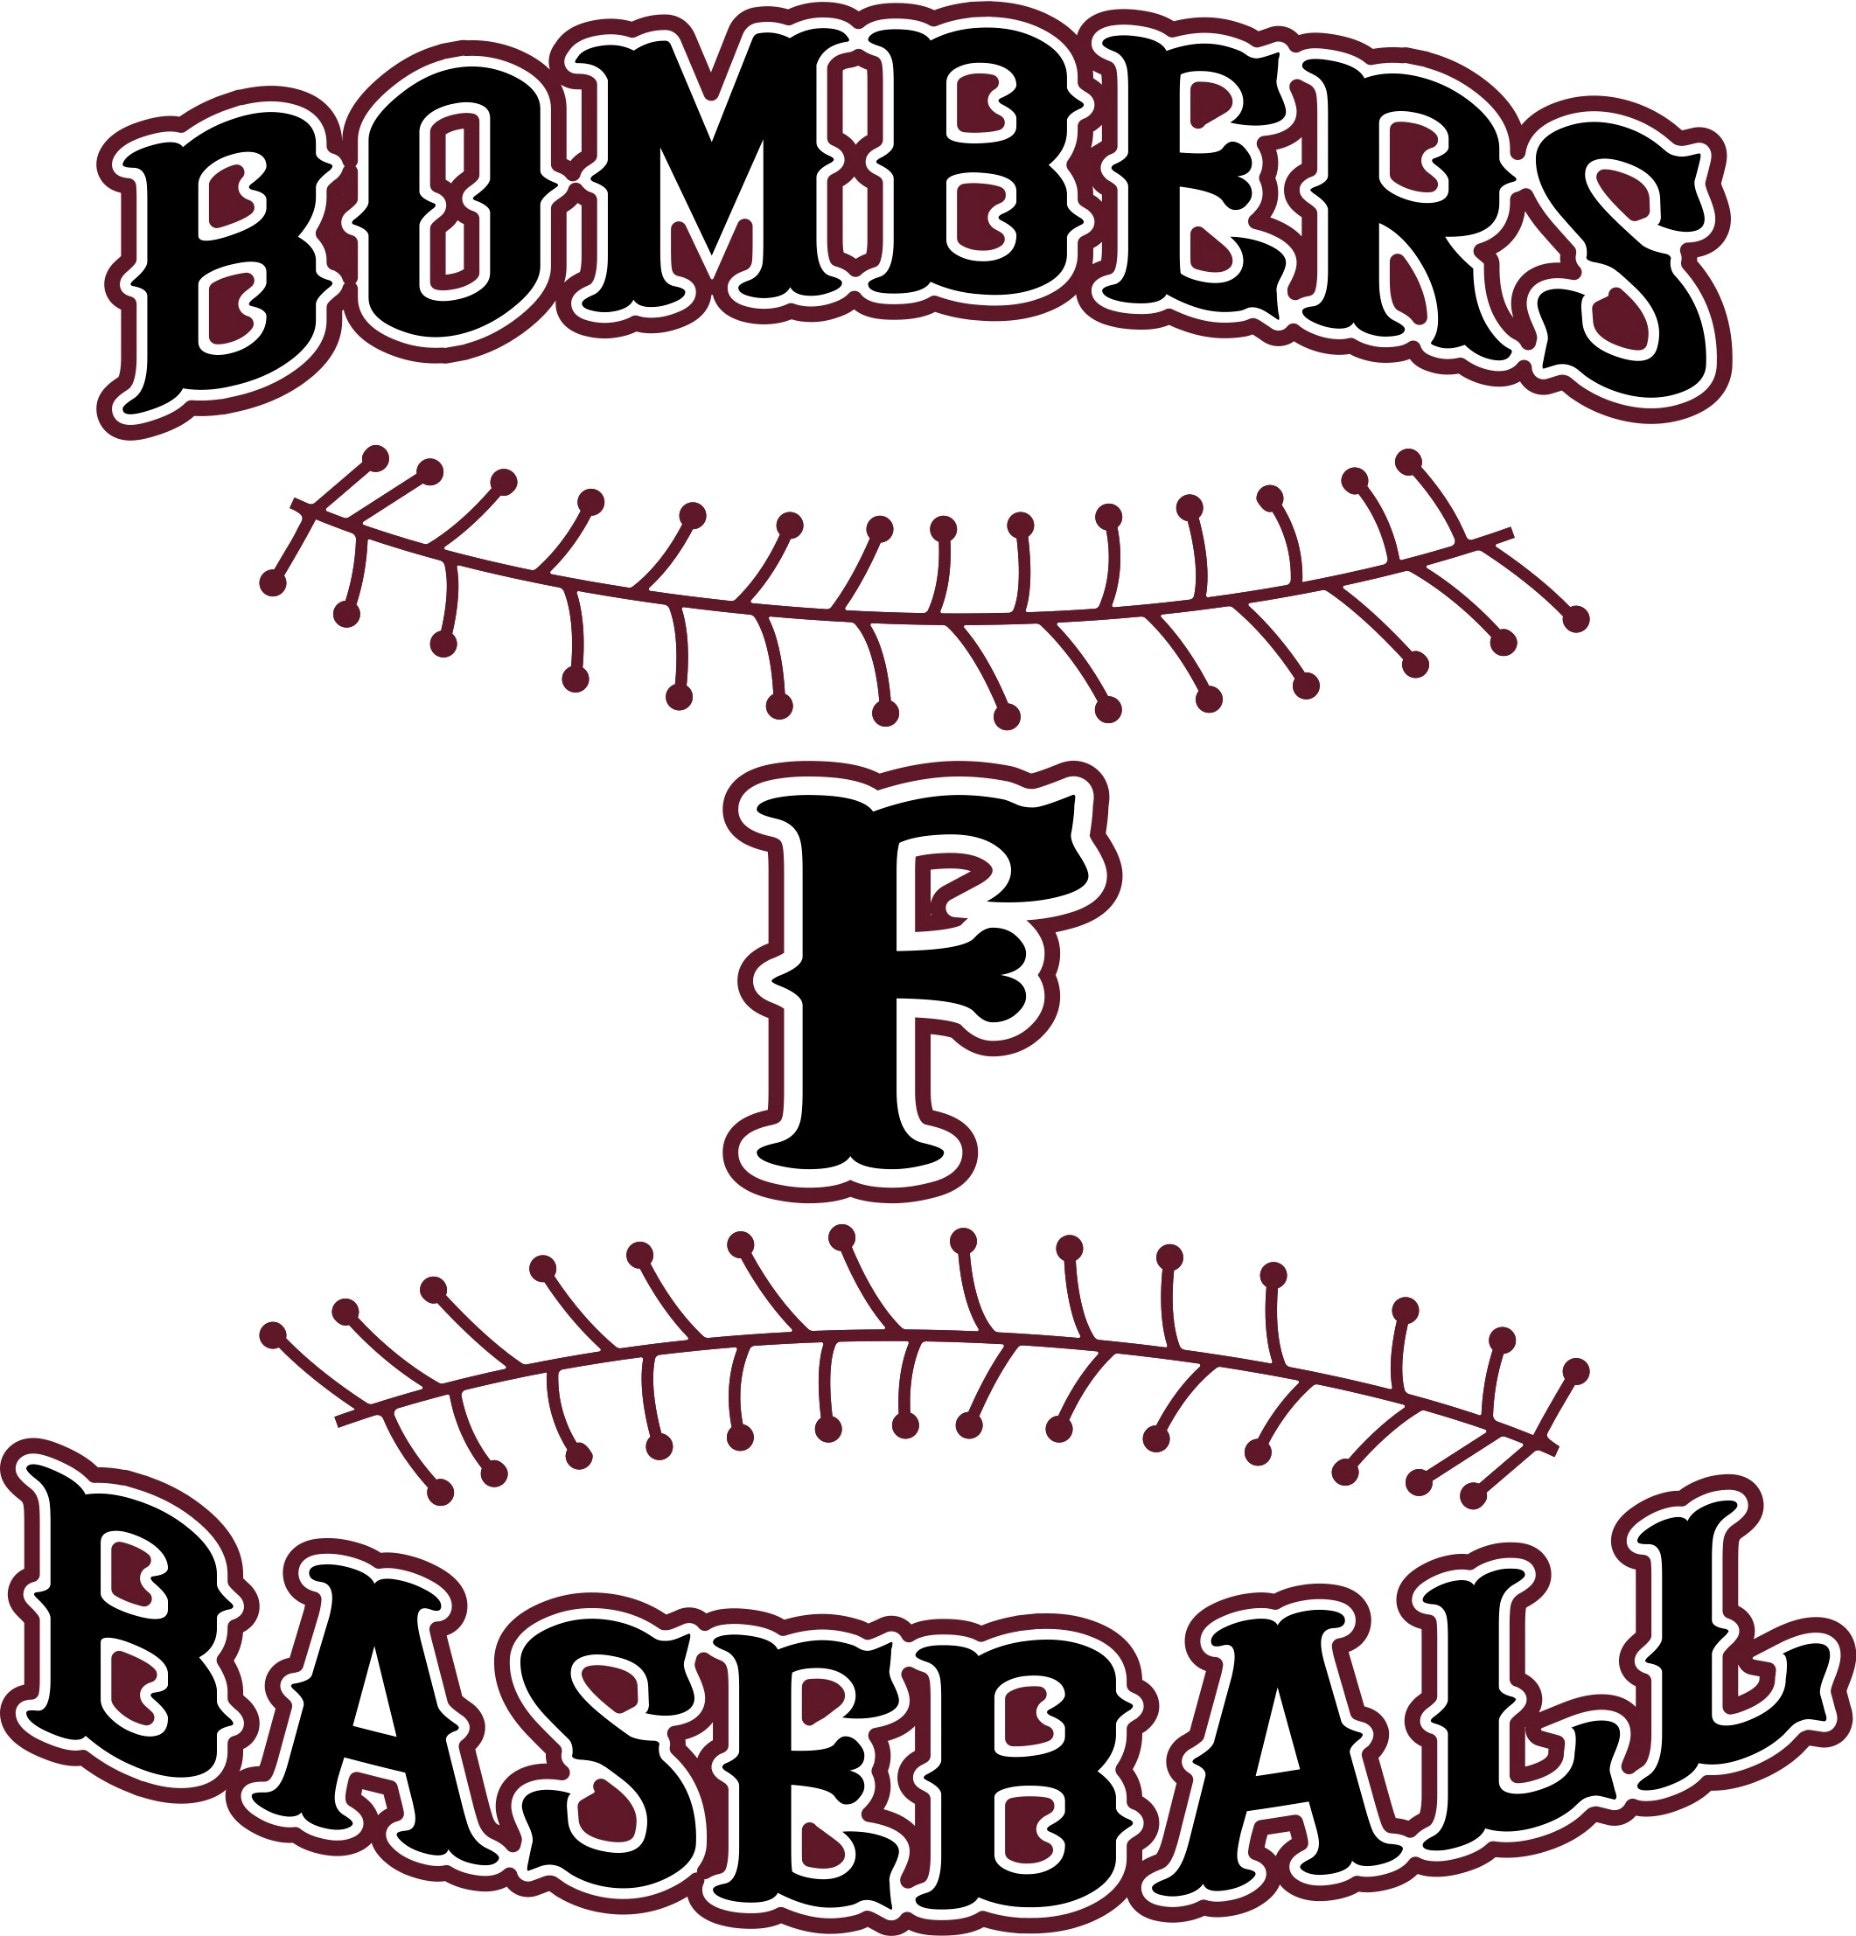 Franklin Bombers Baseball